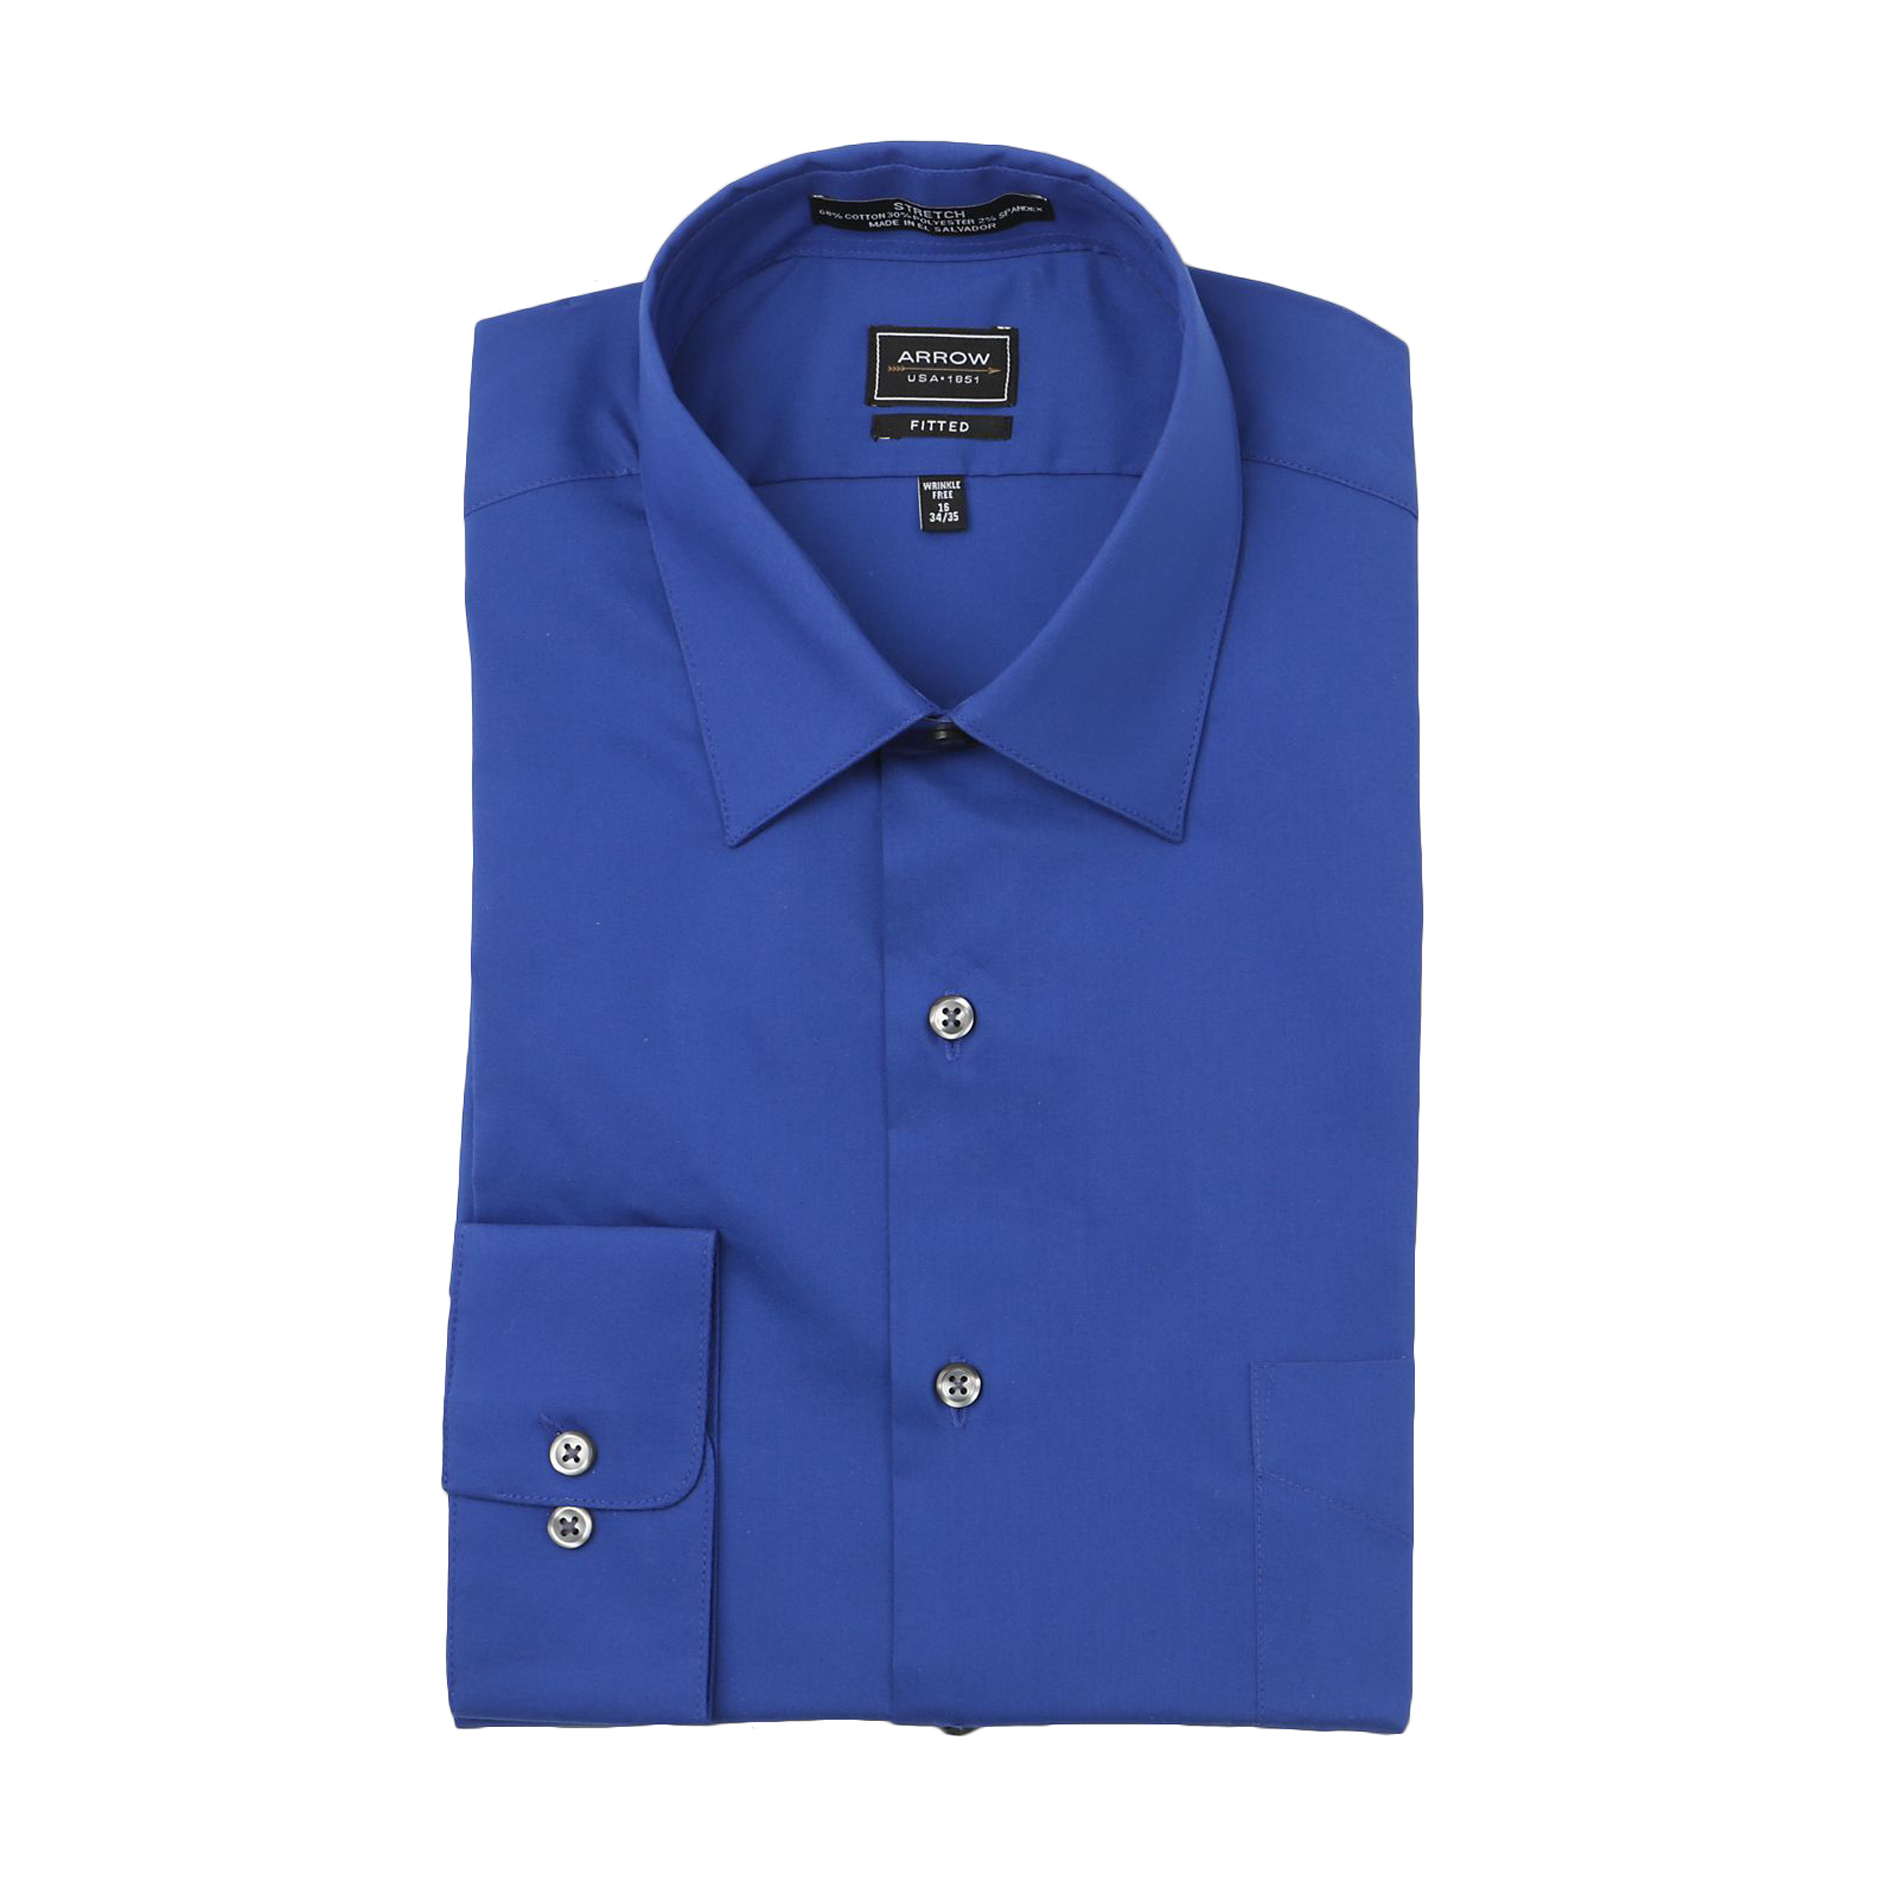 Find great deals on Mens Arrow Dress Shirts Clothing at Kohl's today! Sponsored Links Men's Arrow Fitted Stretch Dress Shirt + sale. $ Regular $ Men's Arrow Regular-Fit Stretch Spread-Collar Dress Shirt. sale. $